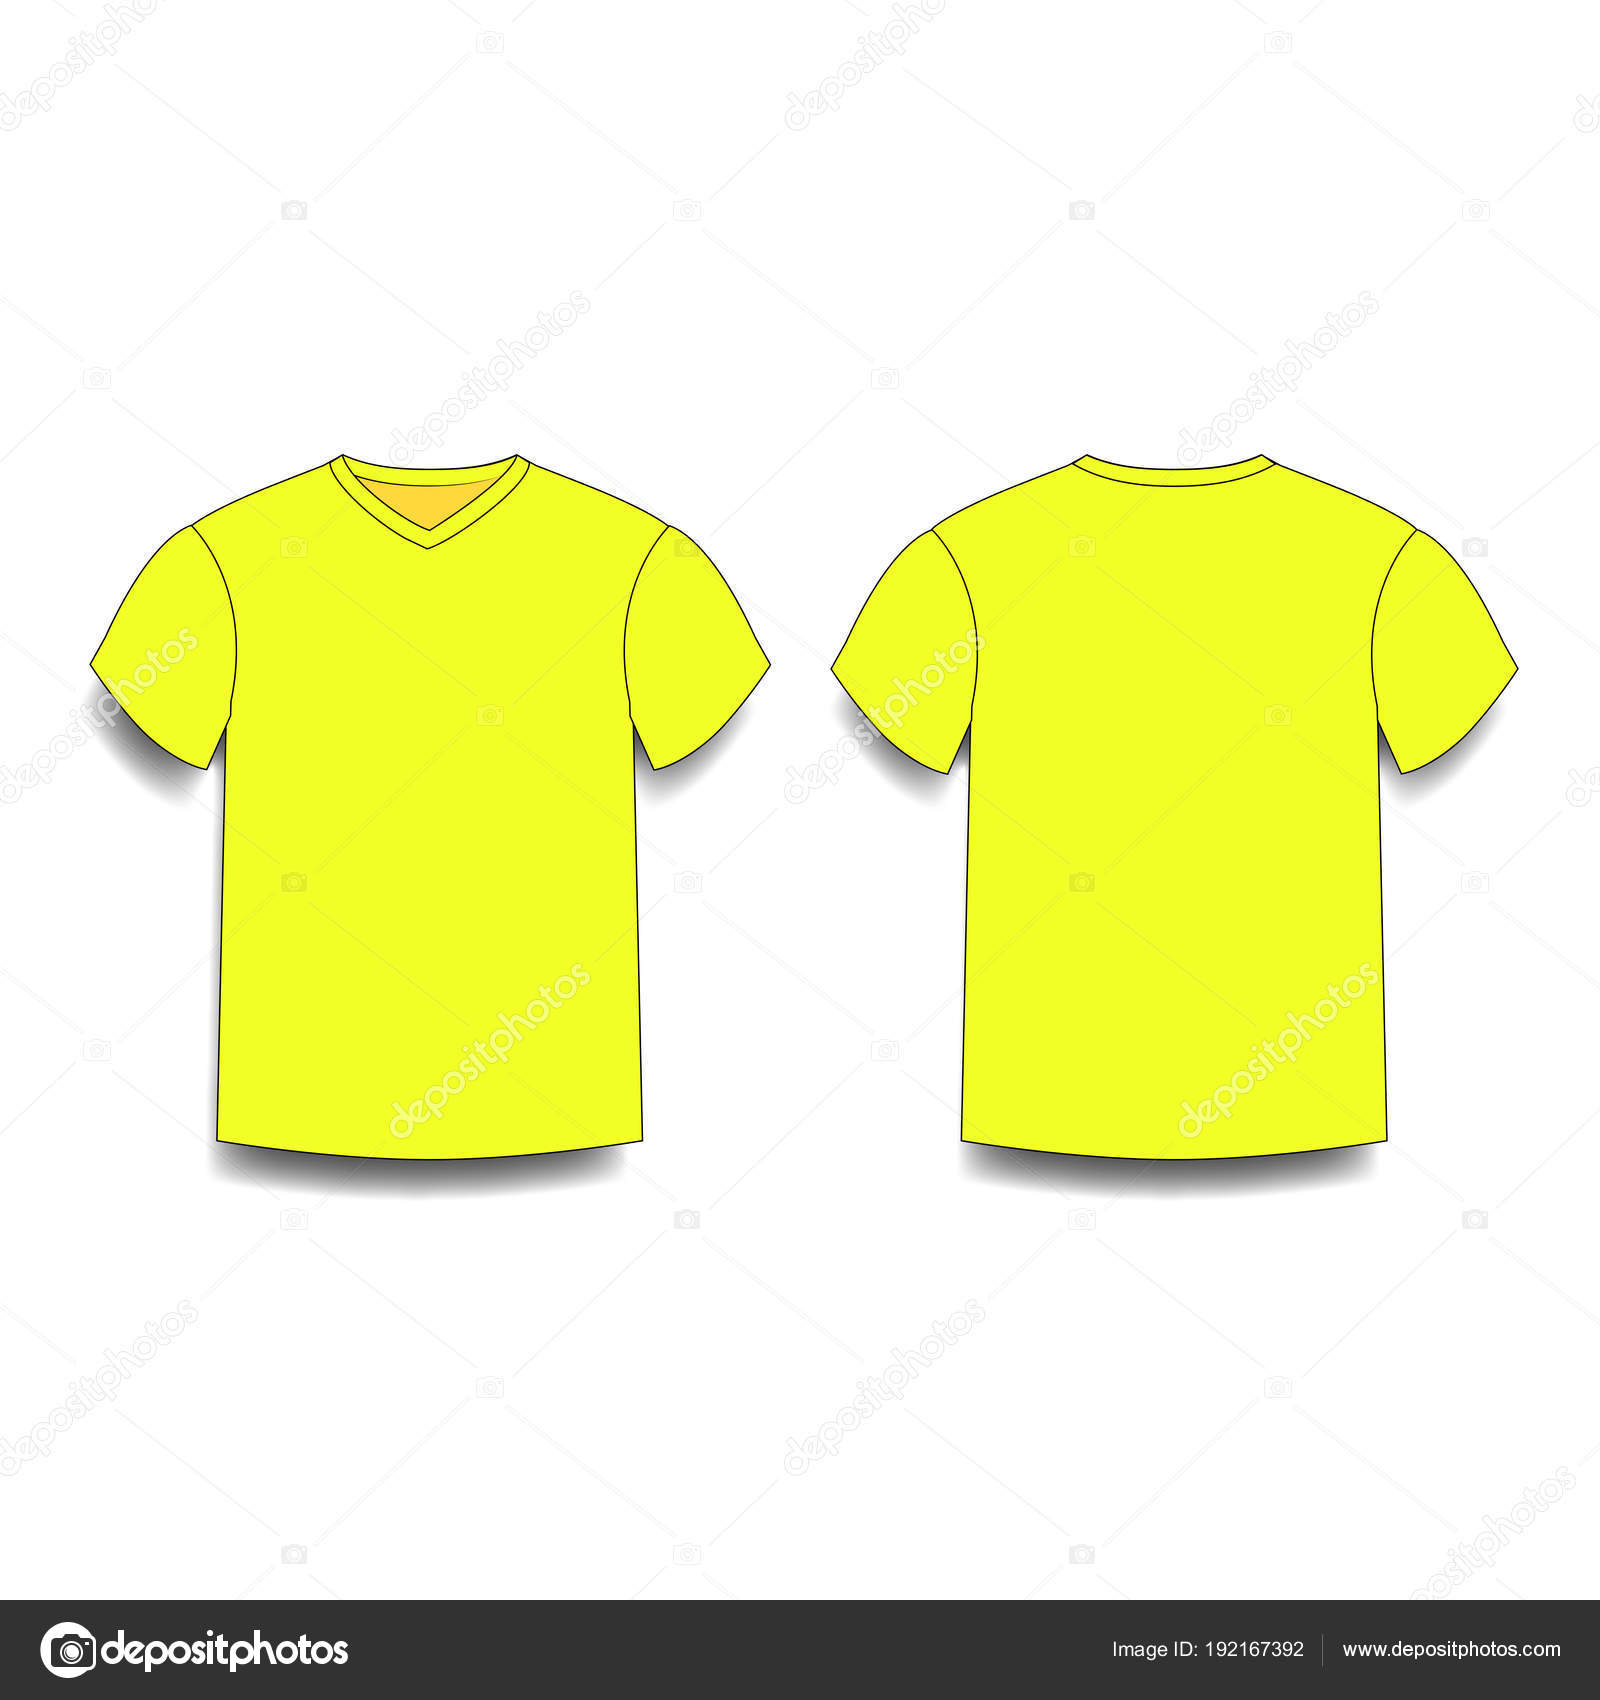 3a6dfbd33975 Yellow men's t-shirt template v-neck front and back side views. Vector of  male t-shirt wearing illustration isolated on white background.